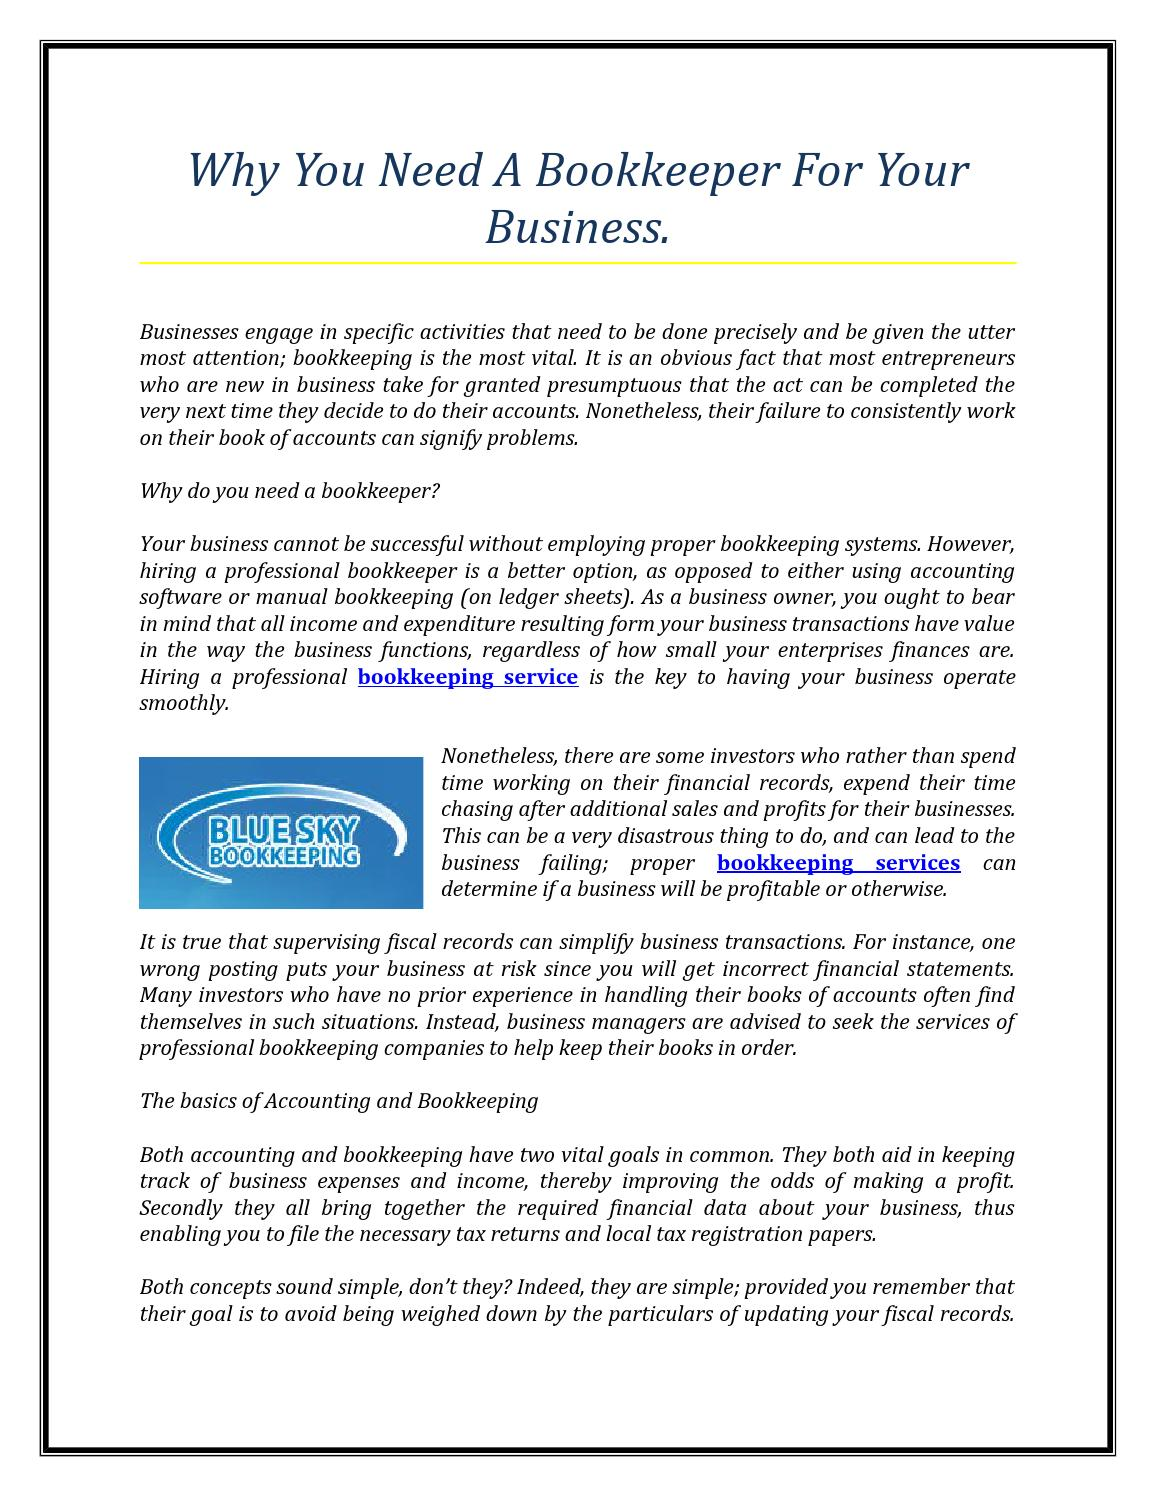 manual bookkeeping for small business